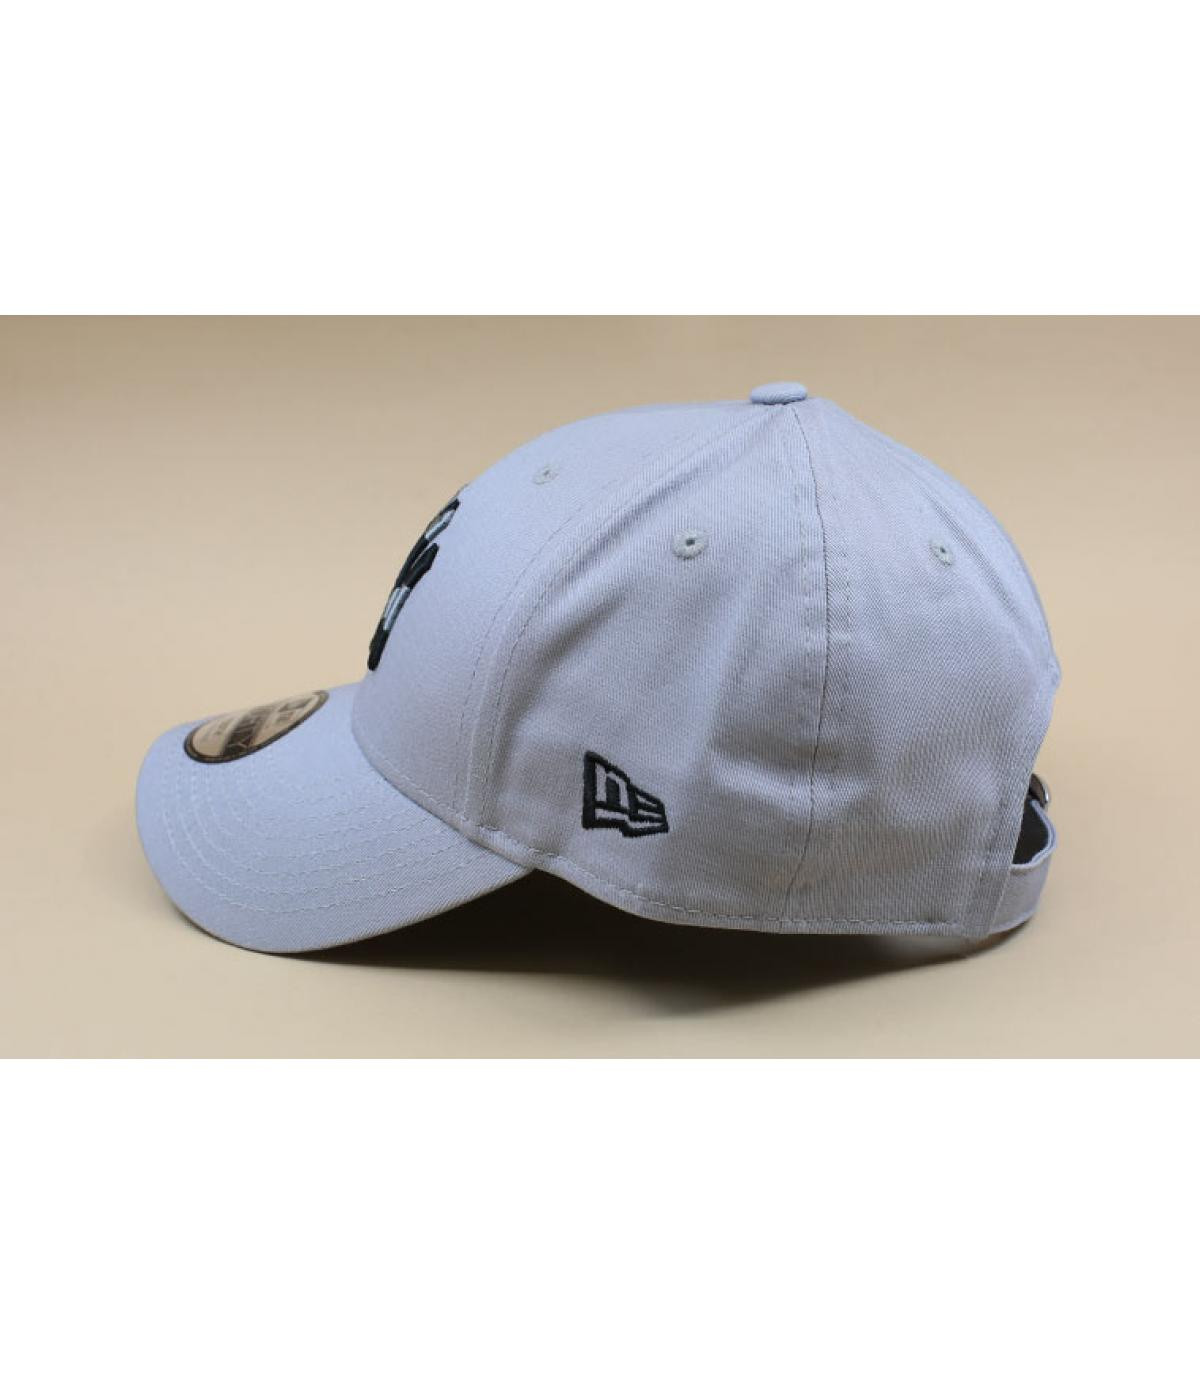 Détails Casquette Kids Camo Infill NY gray - image 4